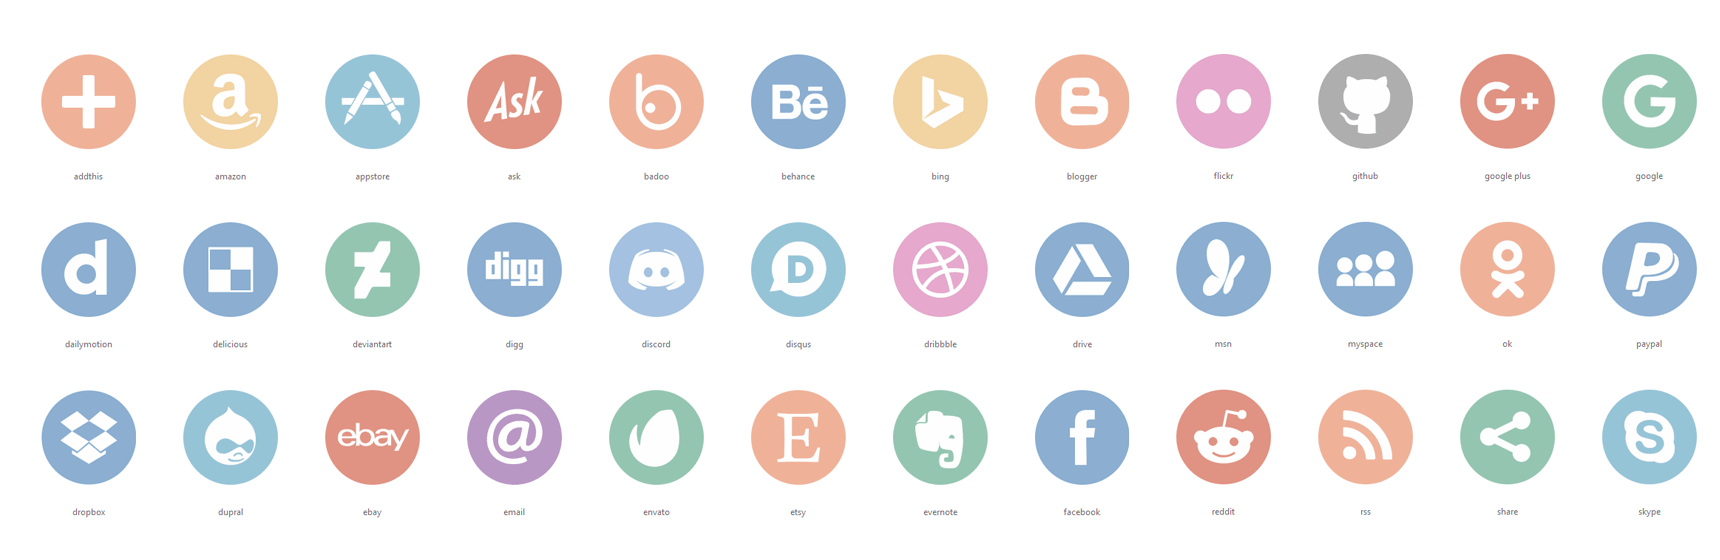 Become a Pro of Social Media with Axialis Free Icon Set - Mochi